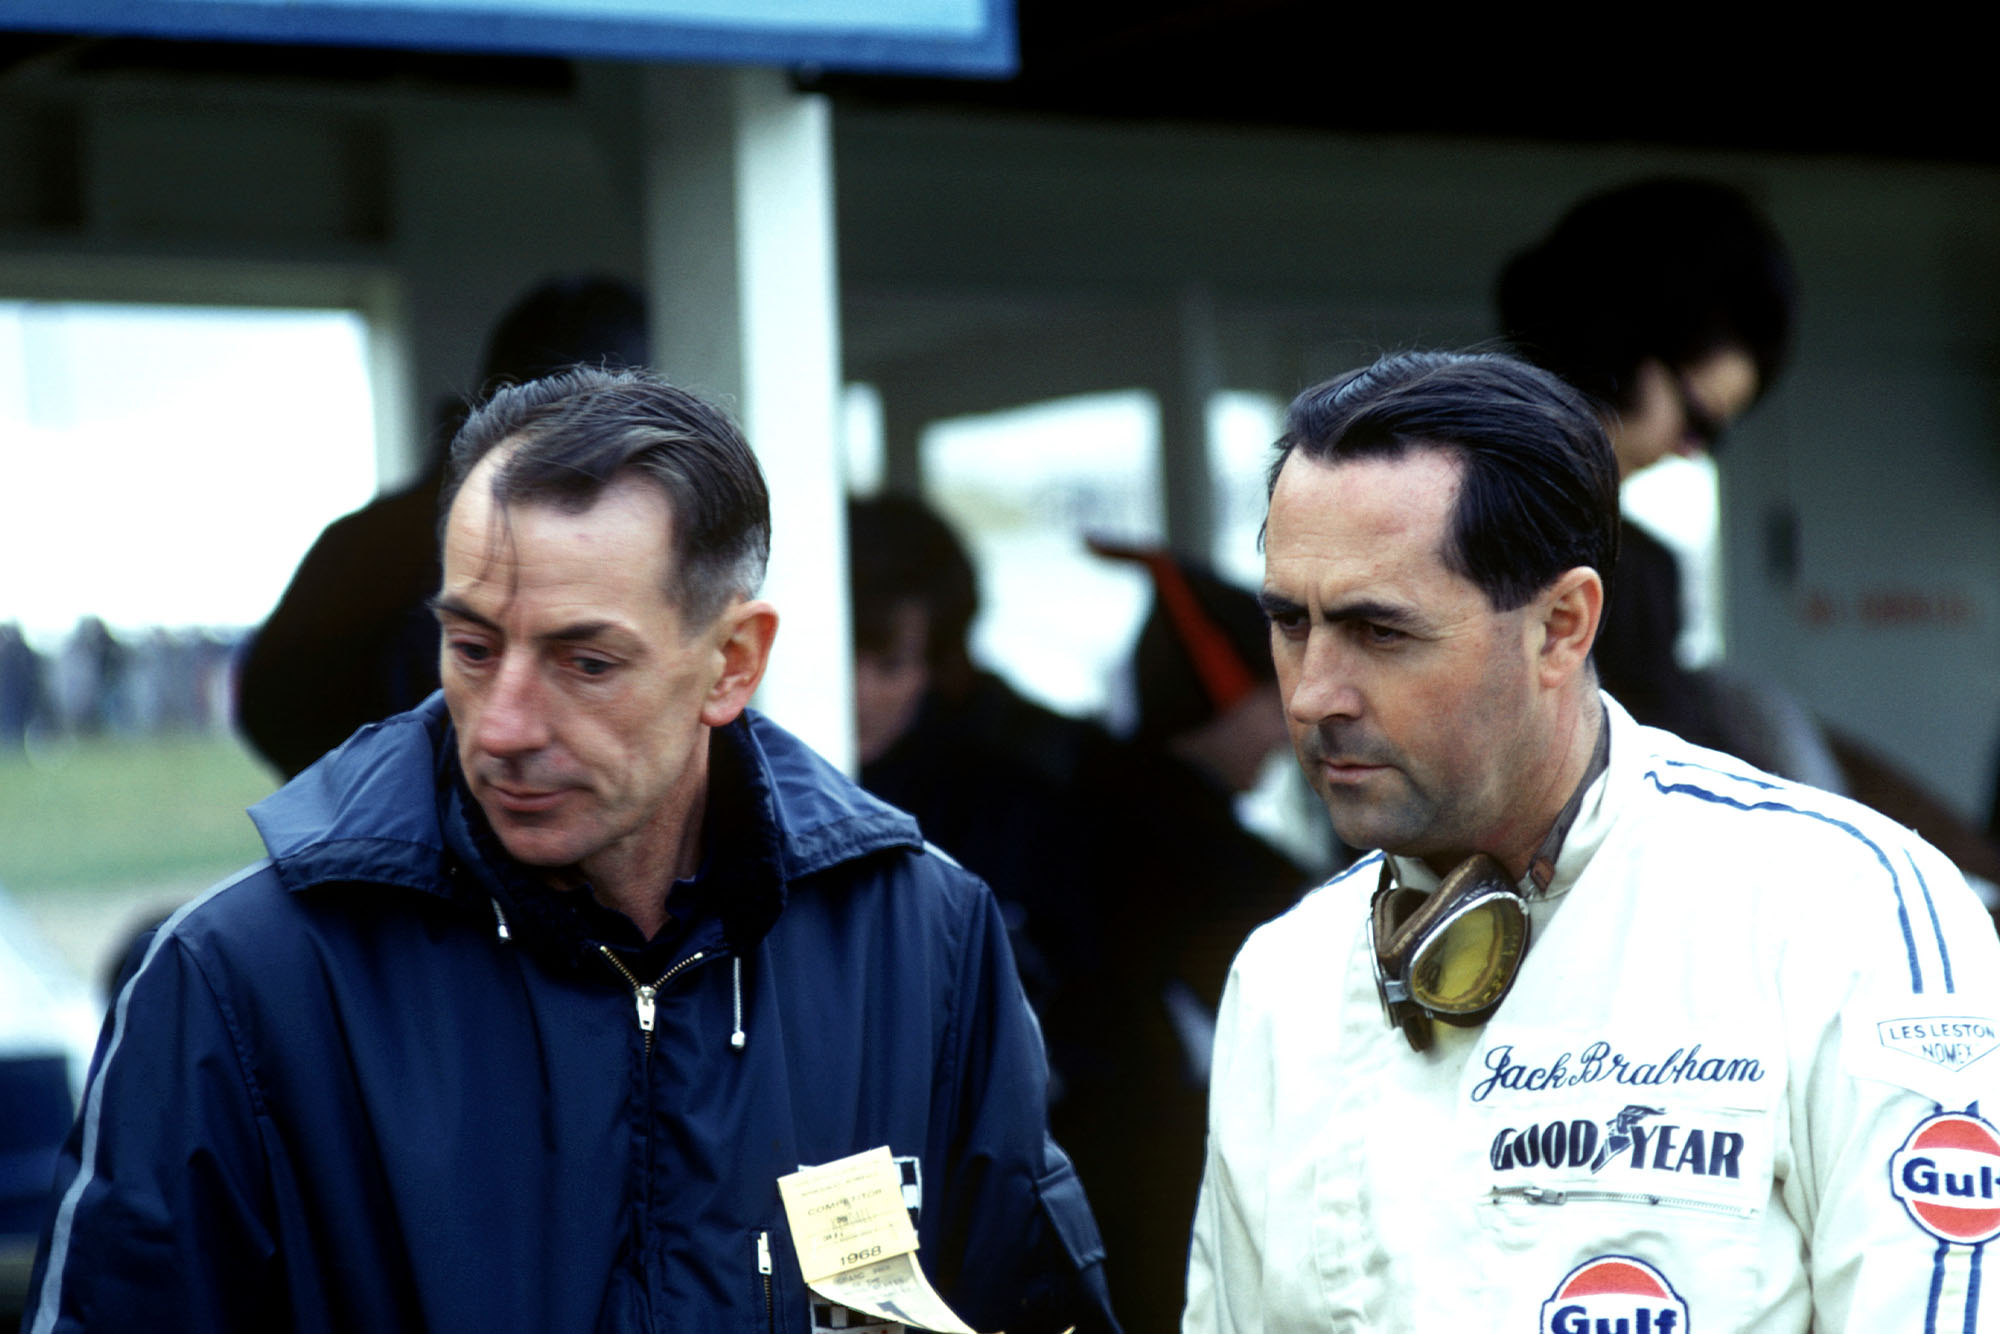 Jack Brabham, right, with his business partner and Brabham car designer Ron Tauranac.